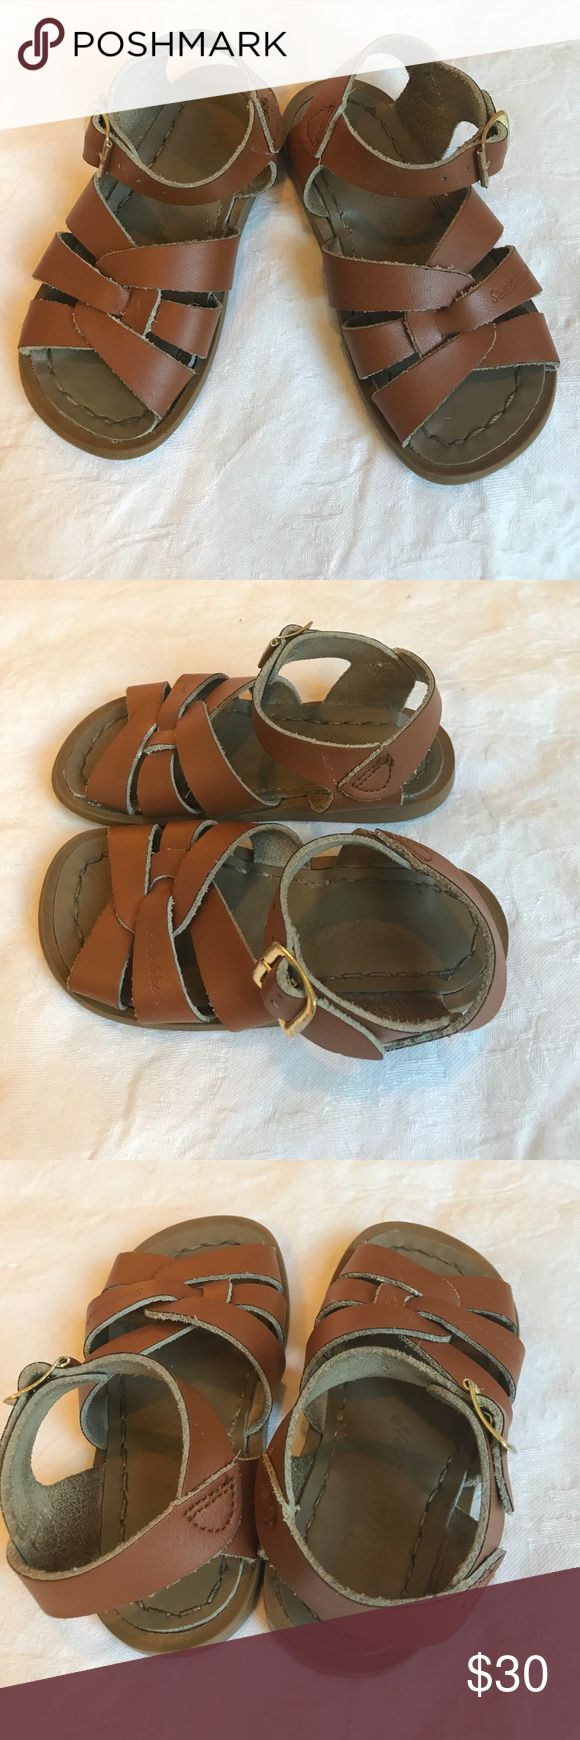 Saltwater Sandals size 8 Originals Brown Saltwater Sandals size 8 Originals Brown Leather in Excellent Condition made by Hoy Salt Water Sandals by Hoy Shoes Sandals & Flip Flops